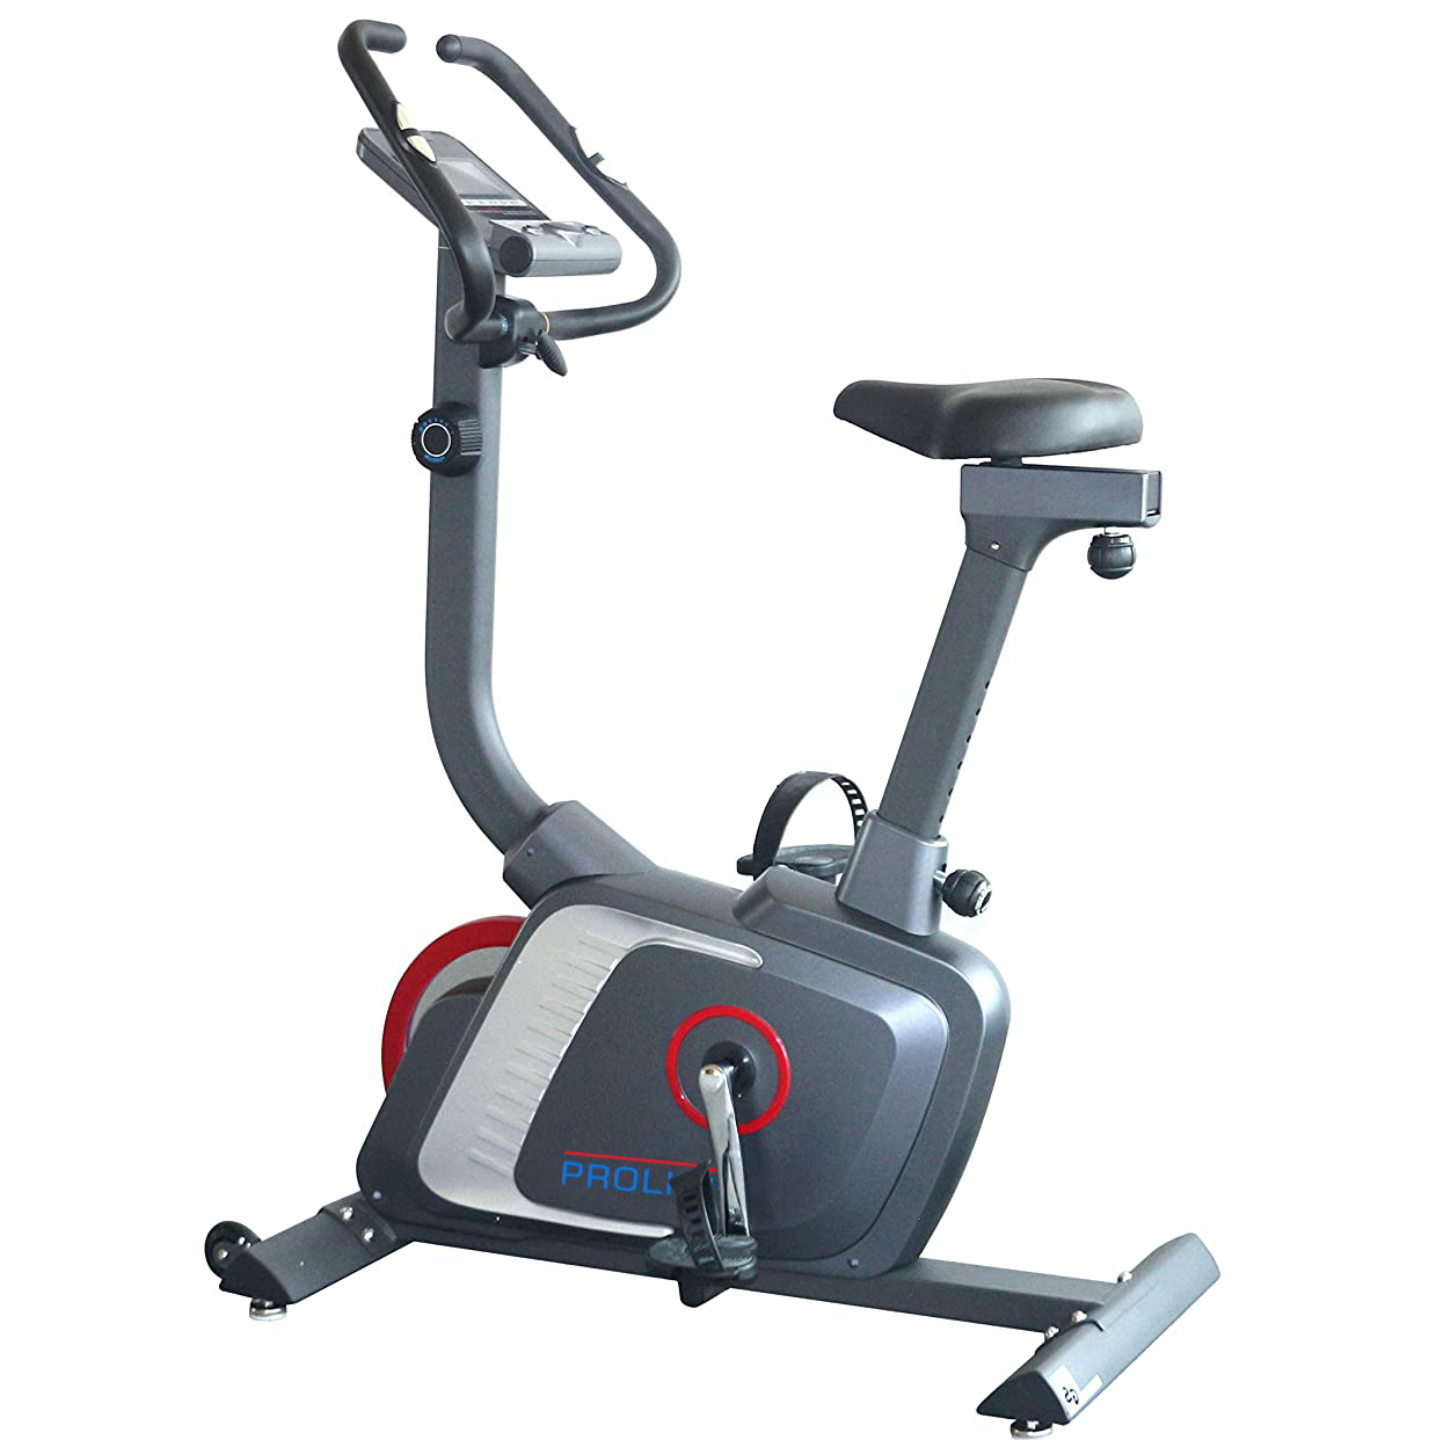 PROLINE 31700R RECUMBENT BIKE